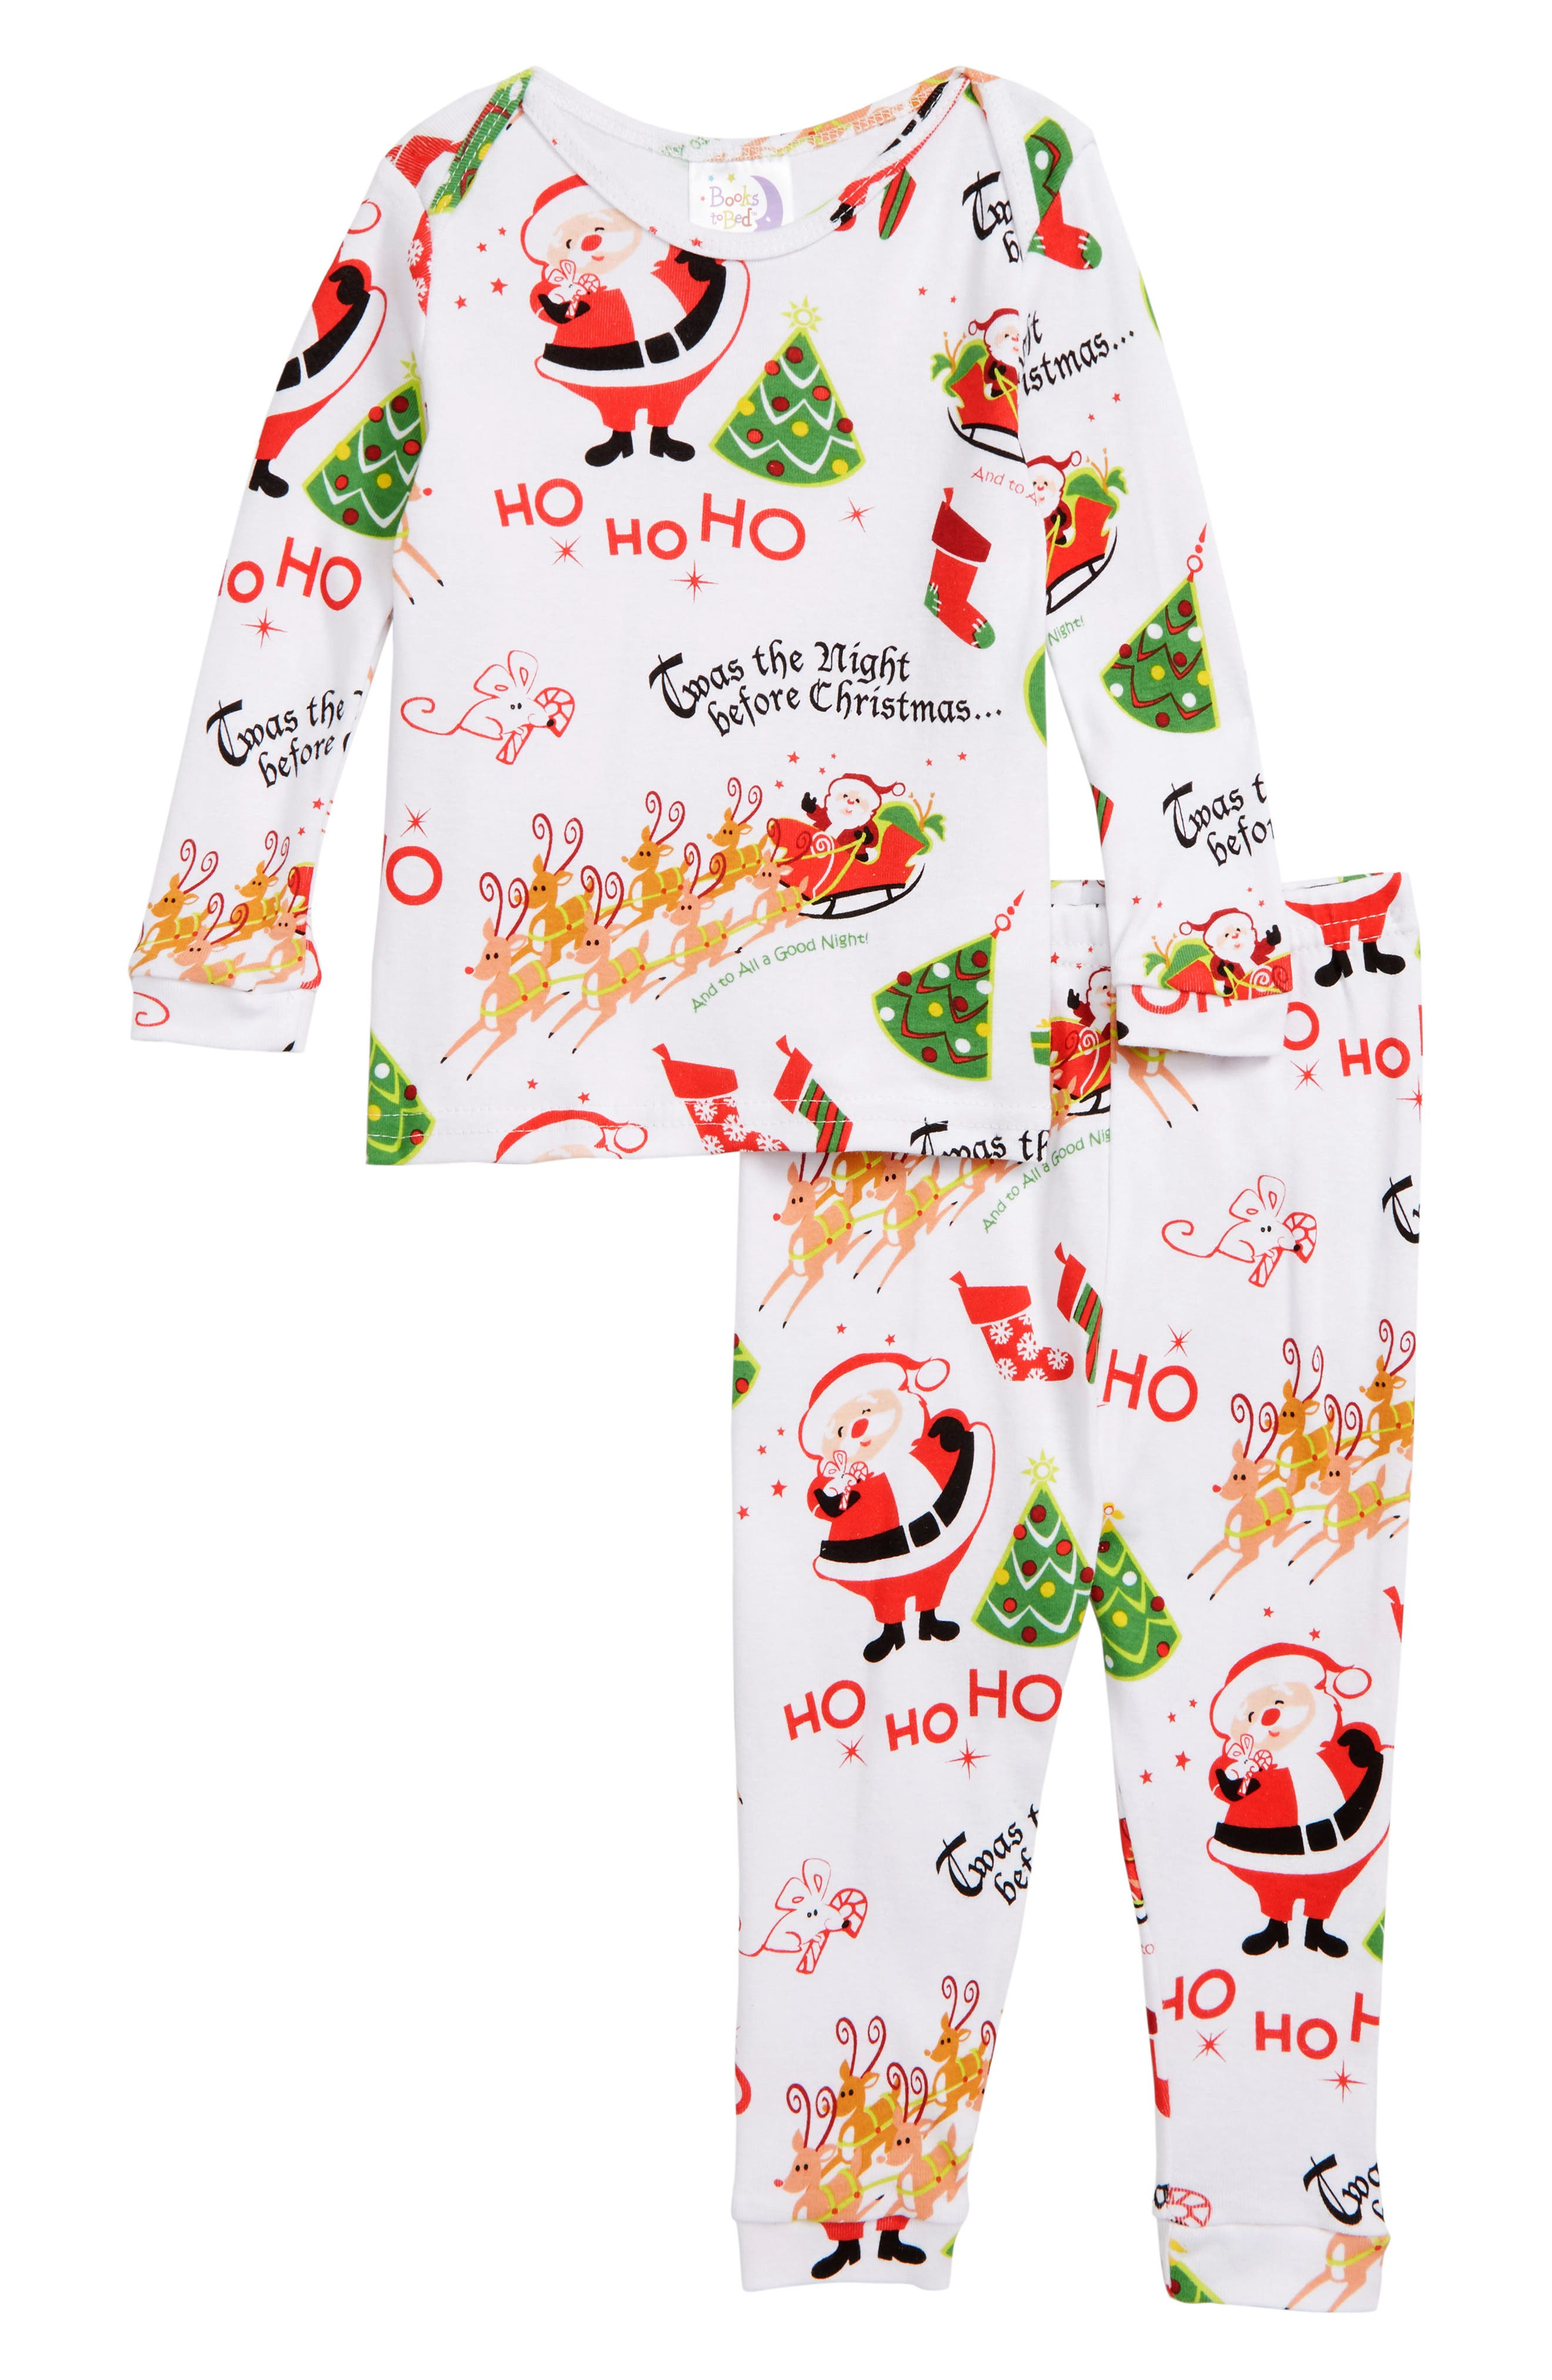 'Twas the Night Before Christmas Fitted Two-Piece Pajamas & Book Set,                             Main thumbnail 1, color,                             WHITE